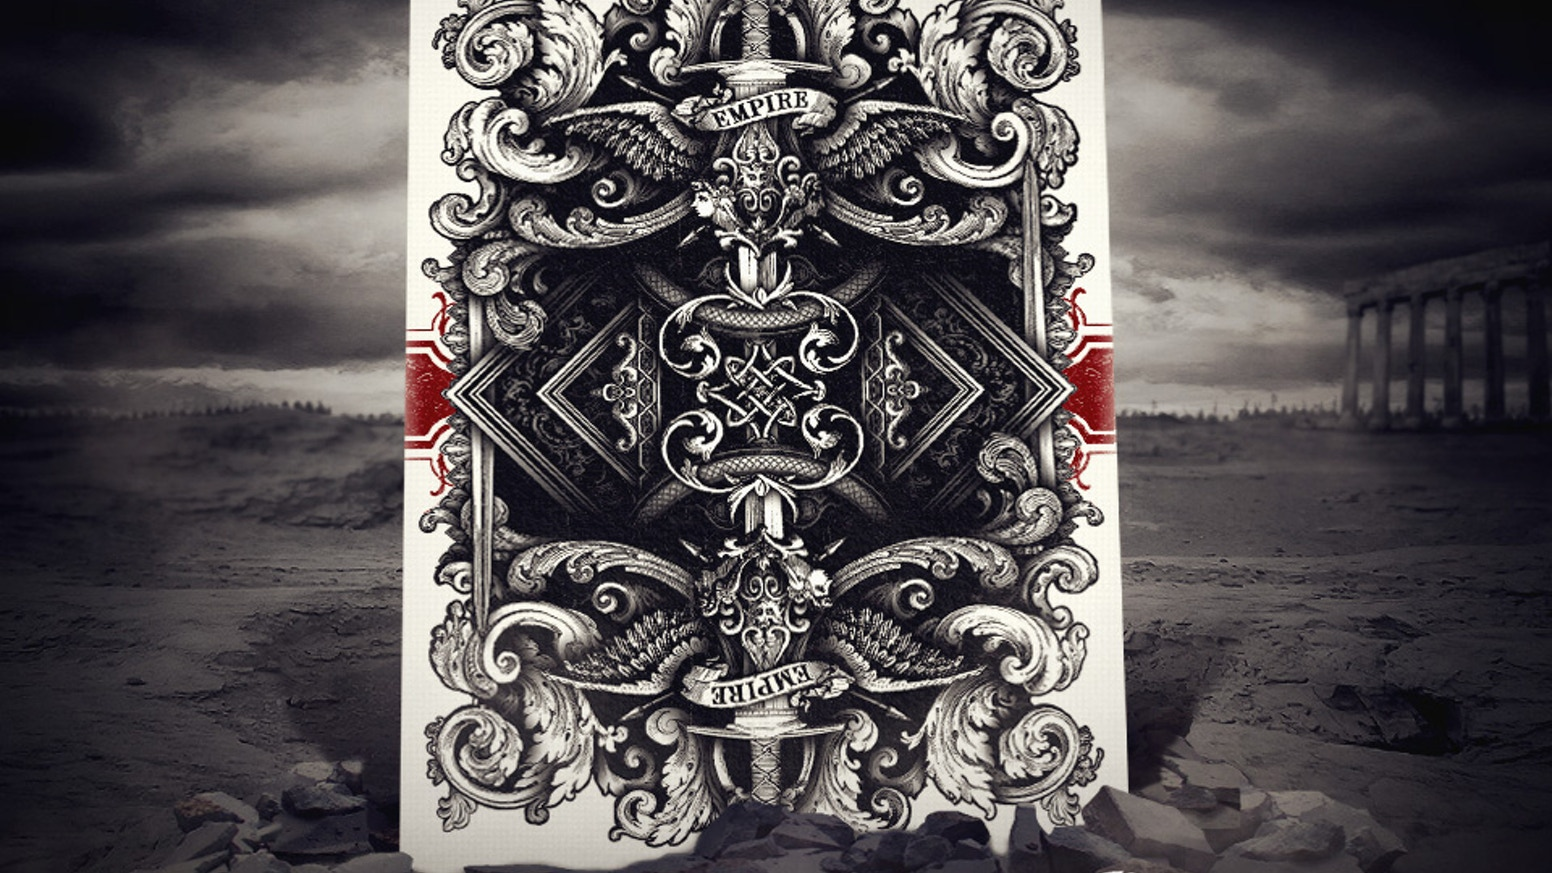 Join us to get notified first of the official Kings & Crooks store launch and our latest playing cards: